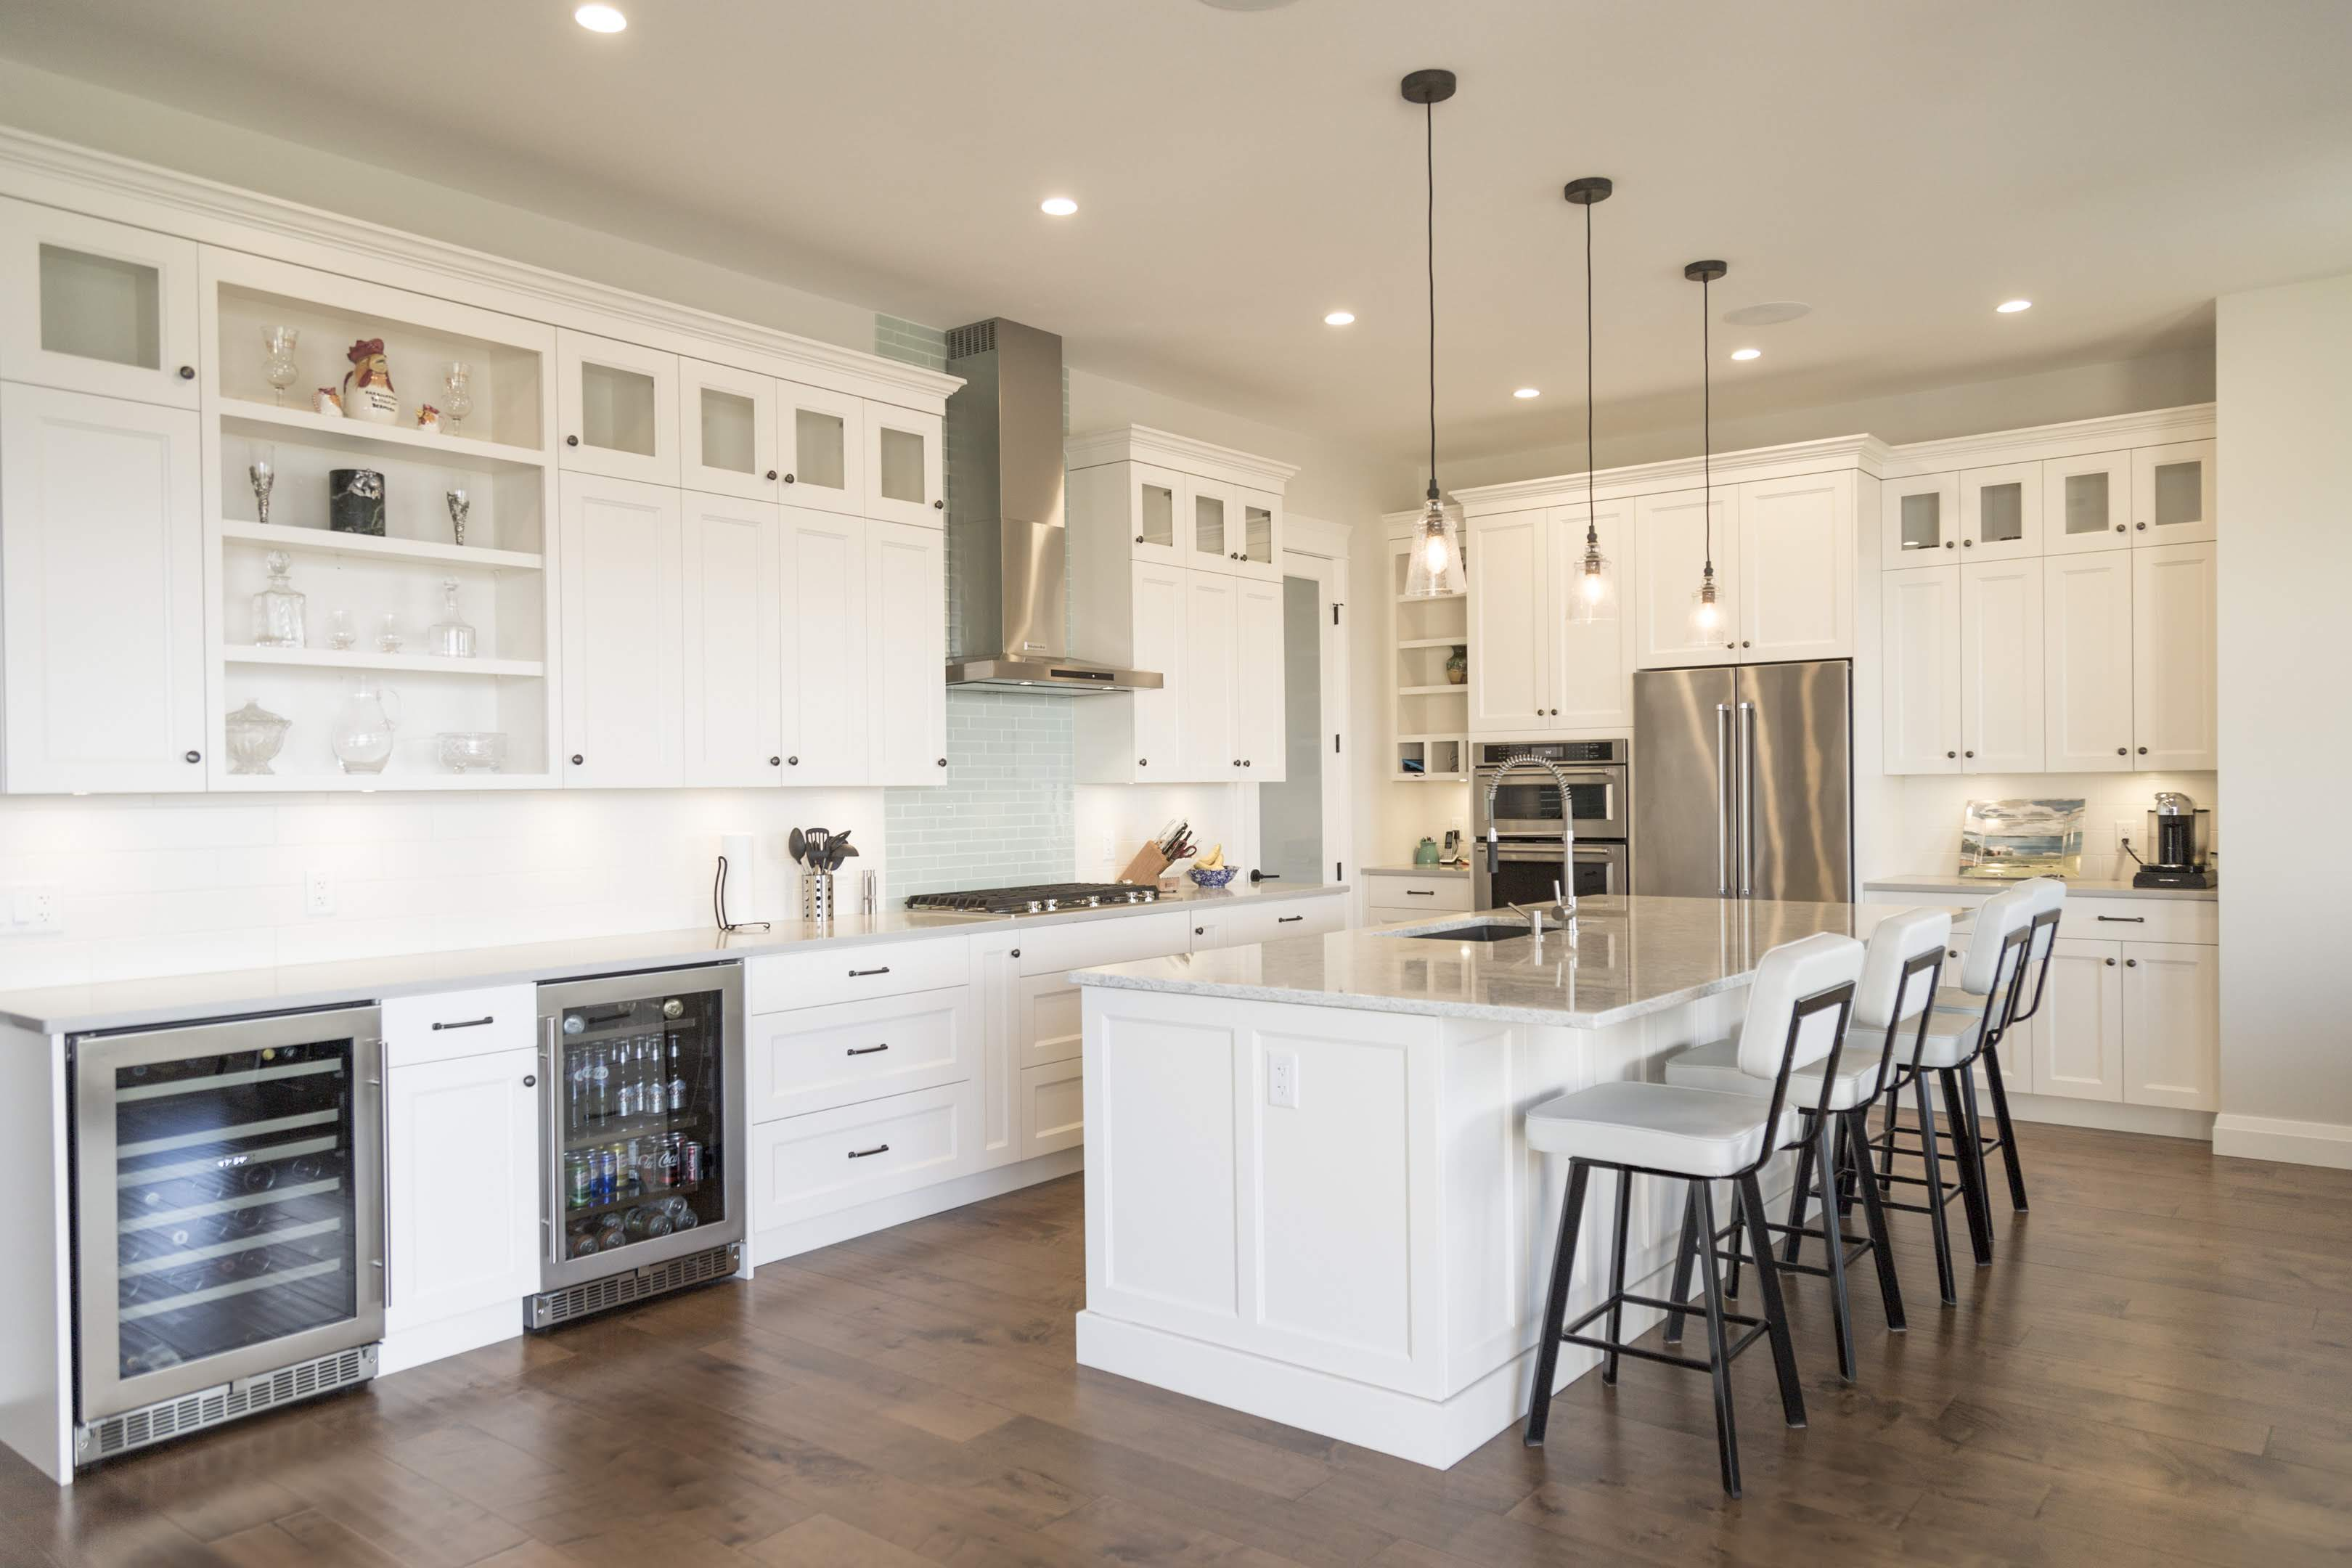 White kitchen with islandbuilt by Impact Builders